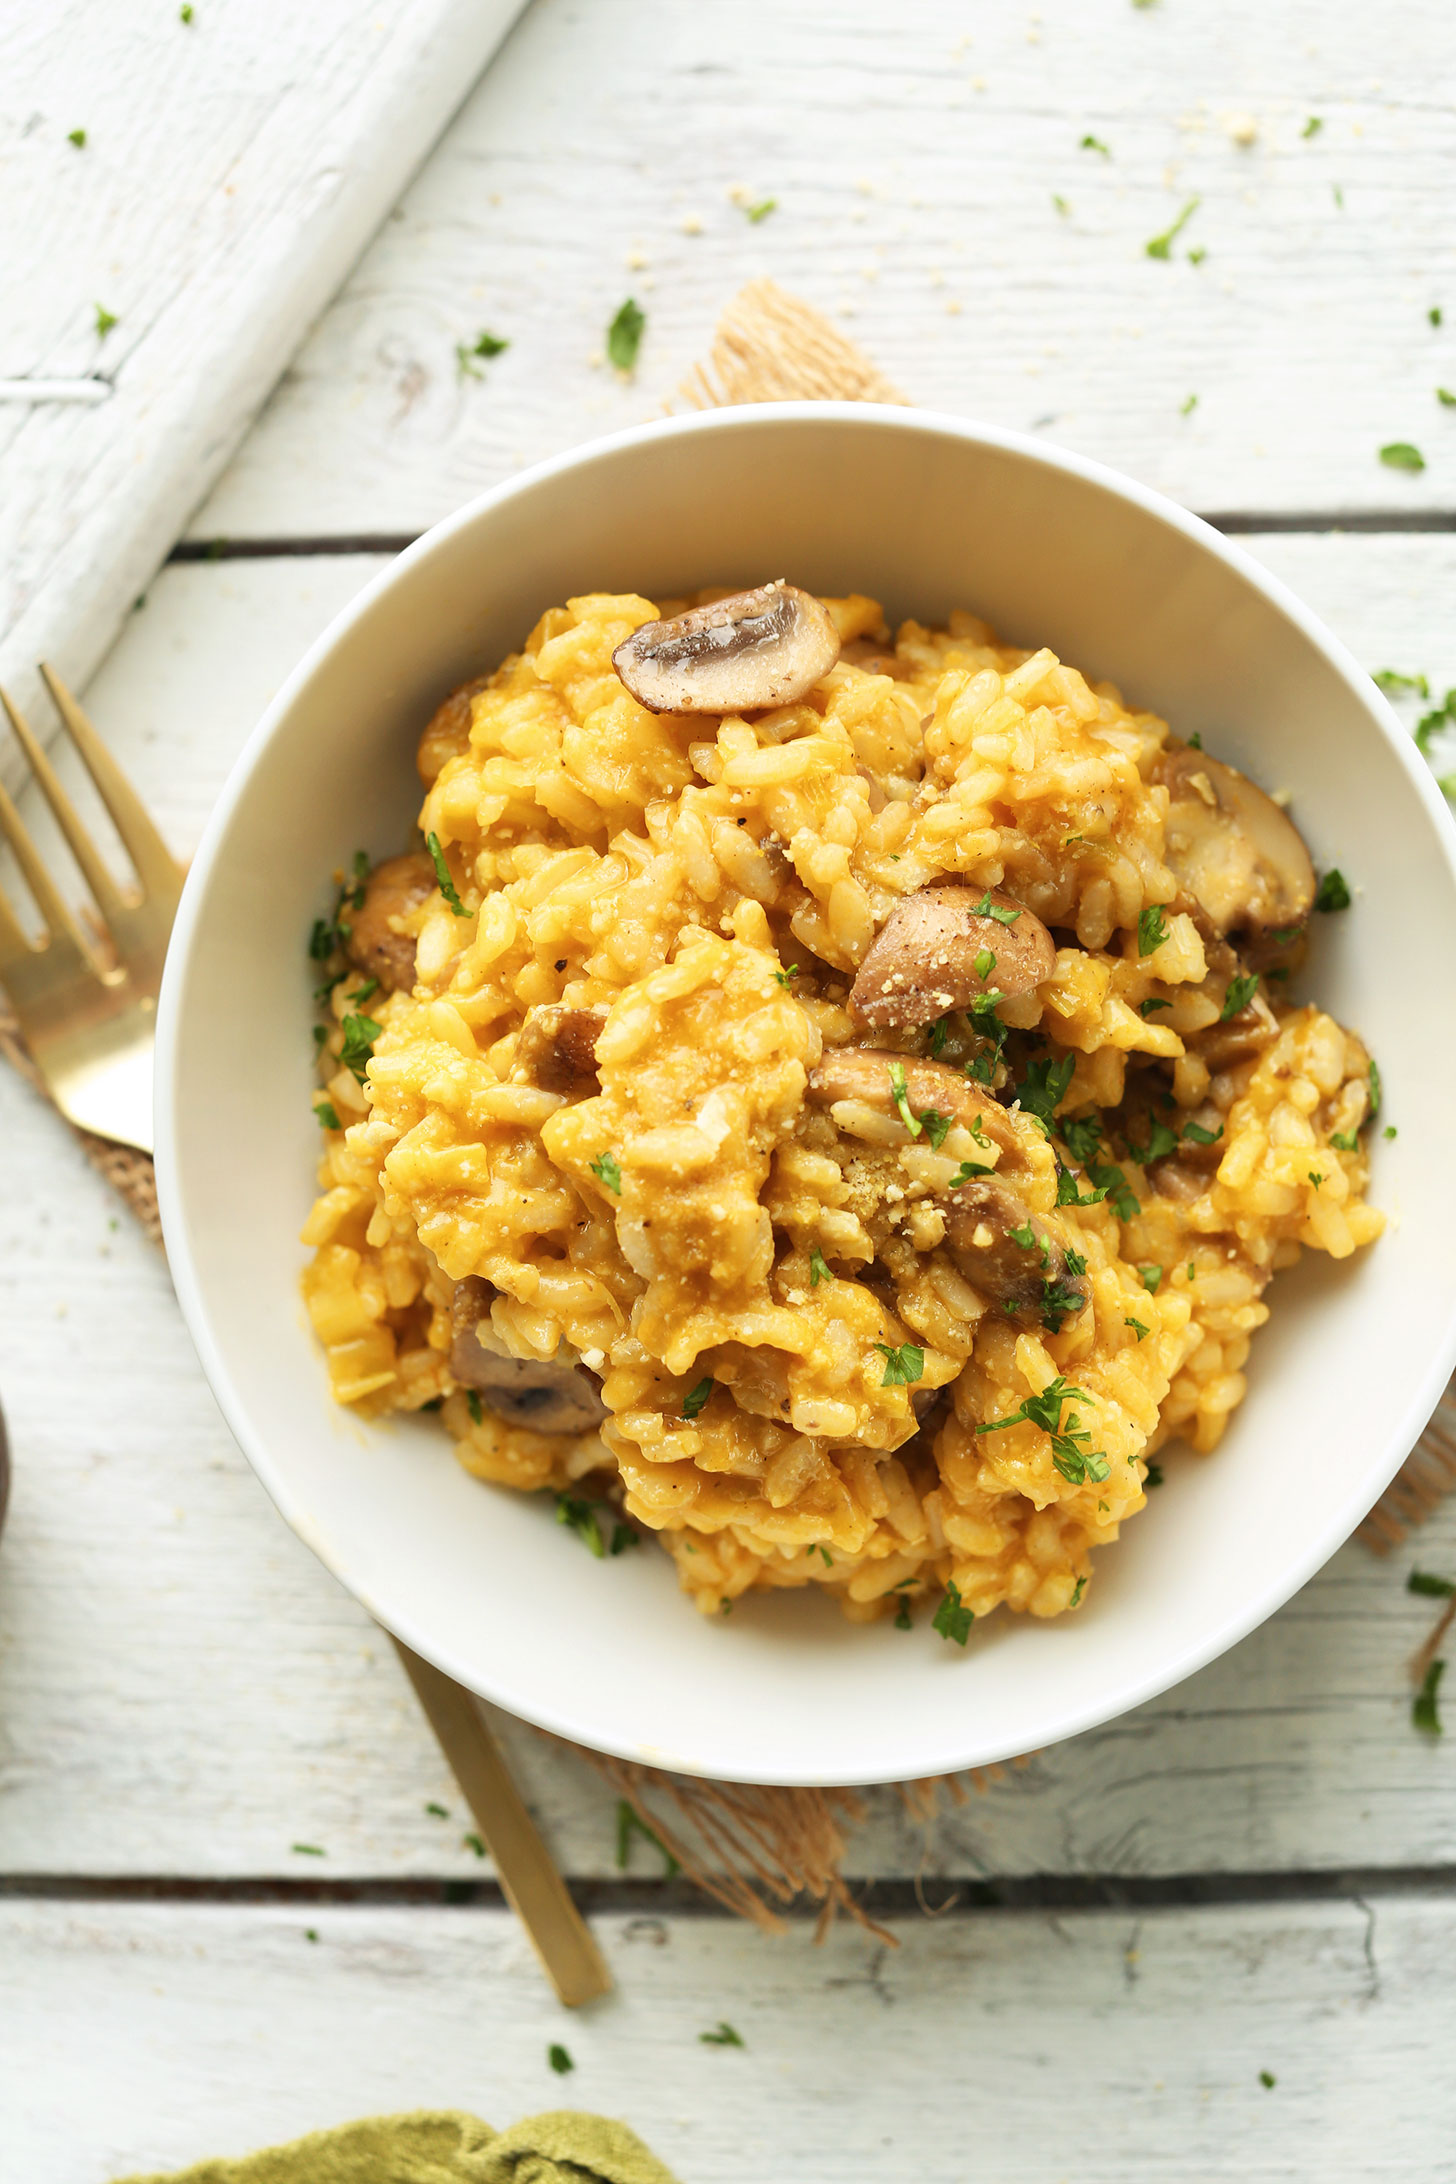 Bowl of our cheesy, comforting gluten-free vegan Risotto with Mushrooms and Leeks